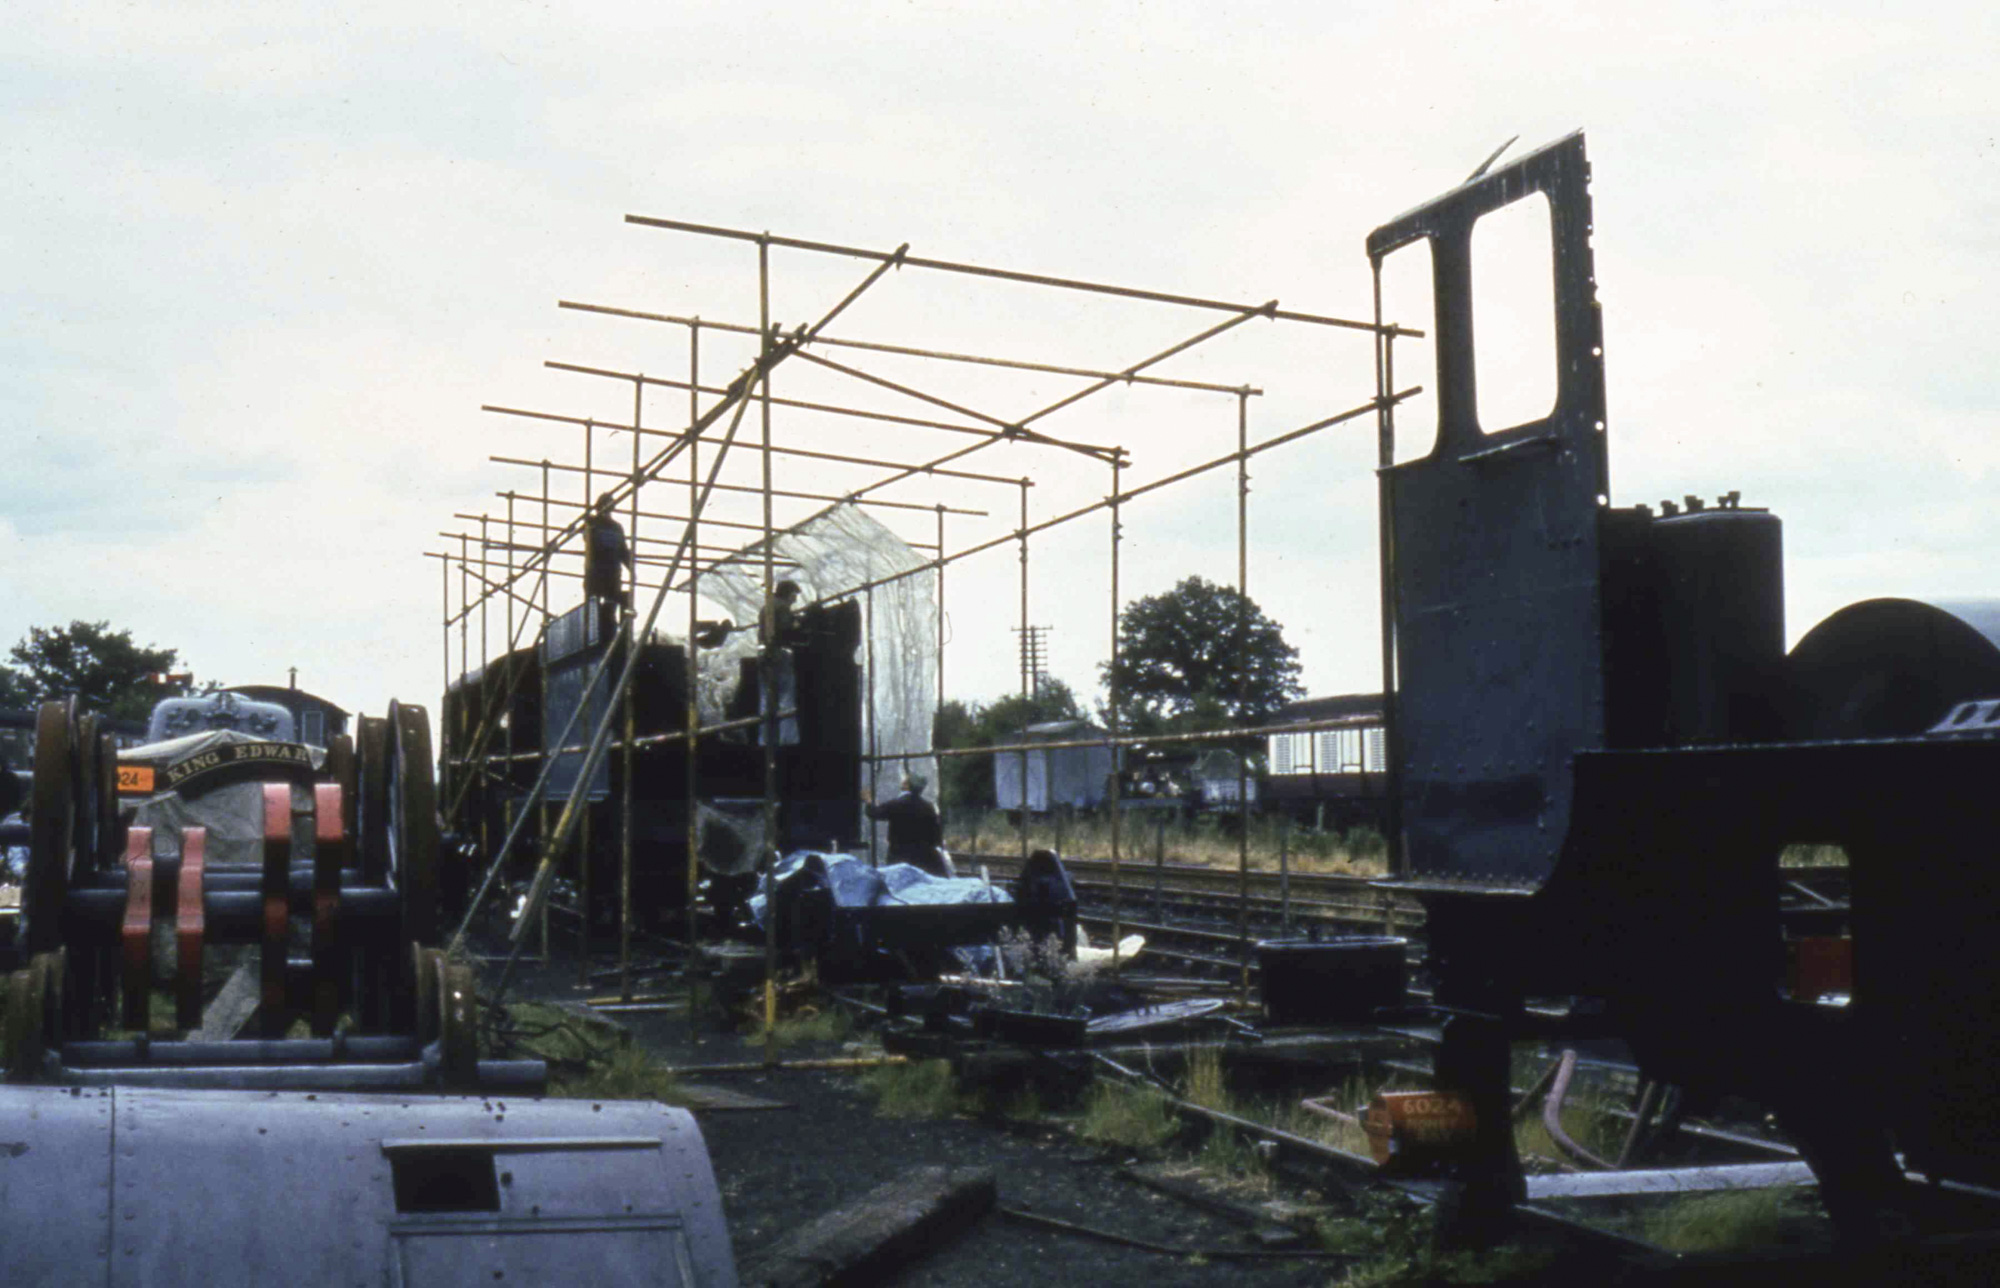 Some cover gets built over the loco, 28 June 1981. © Unknown, please contact us if you know the photographer